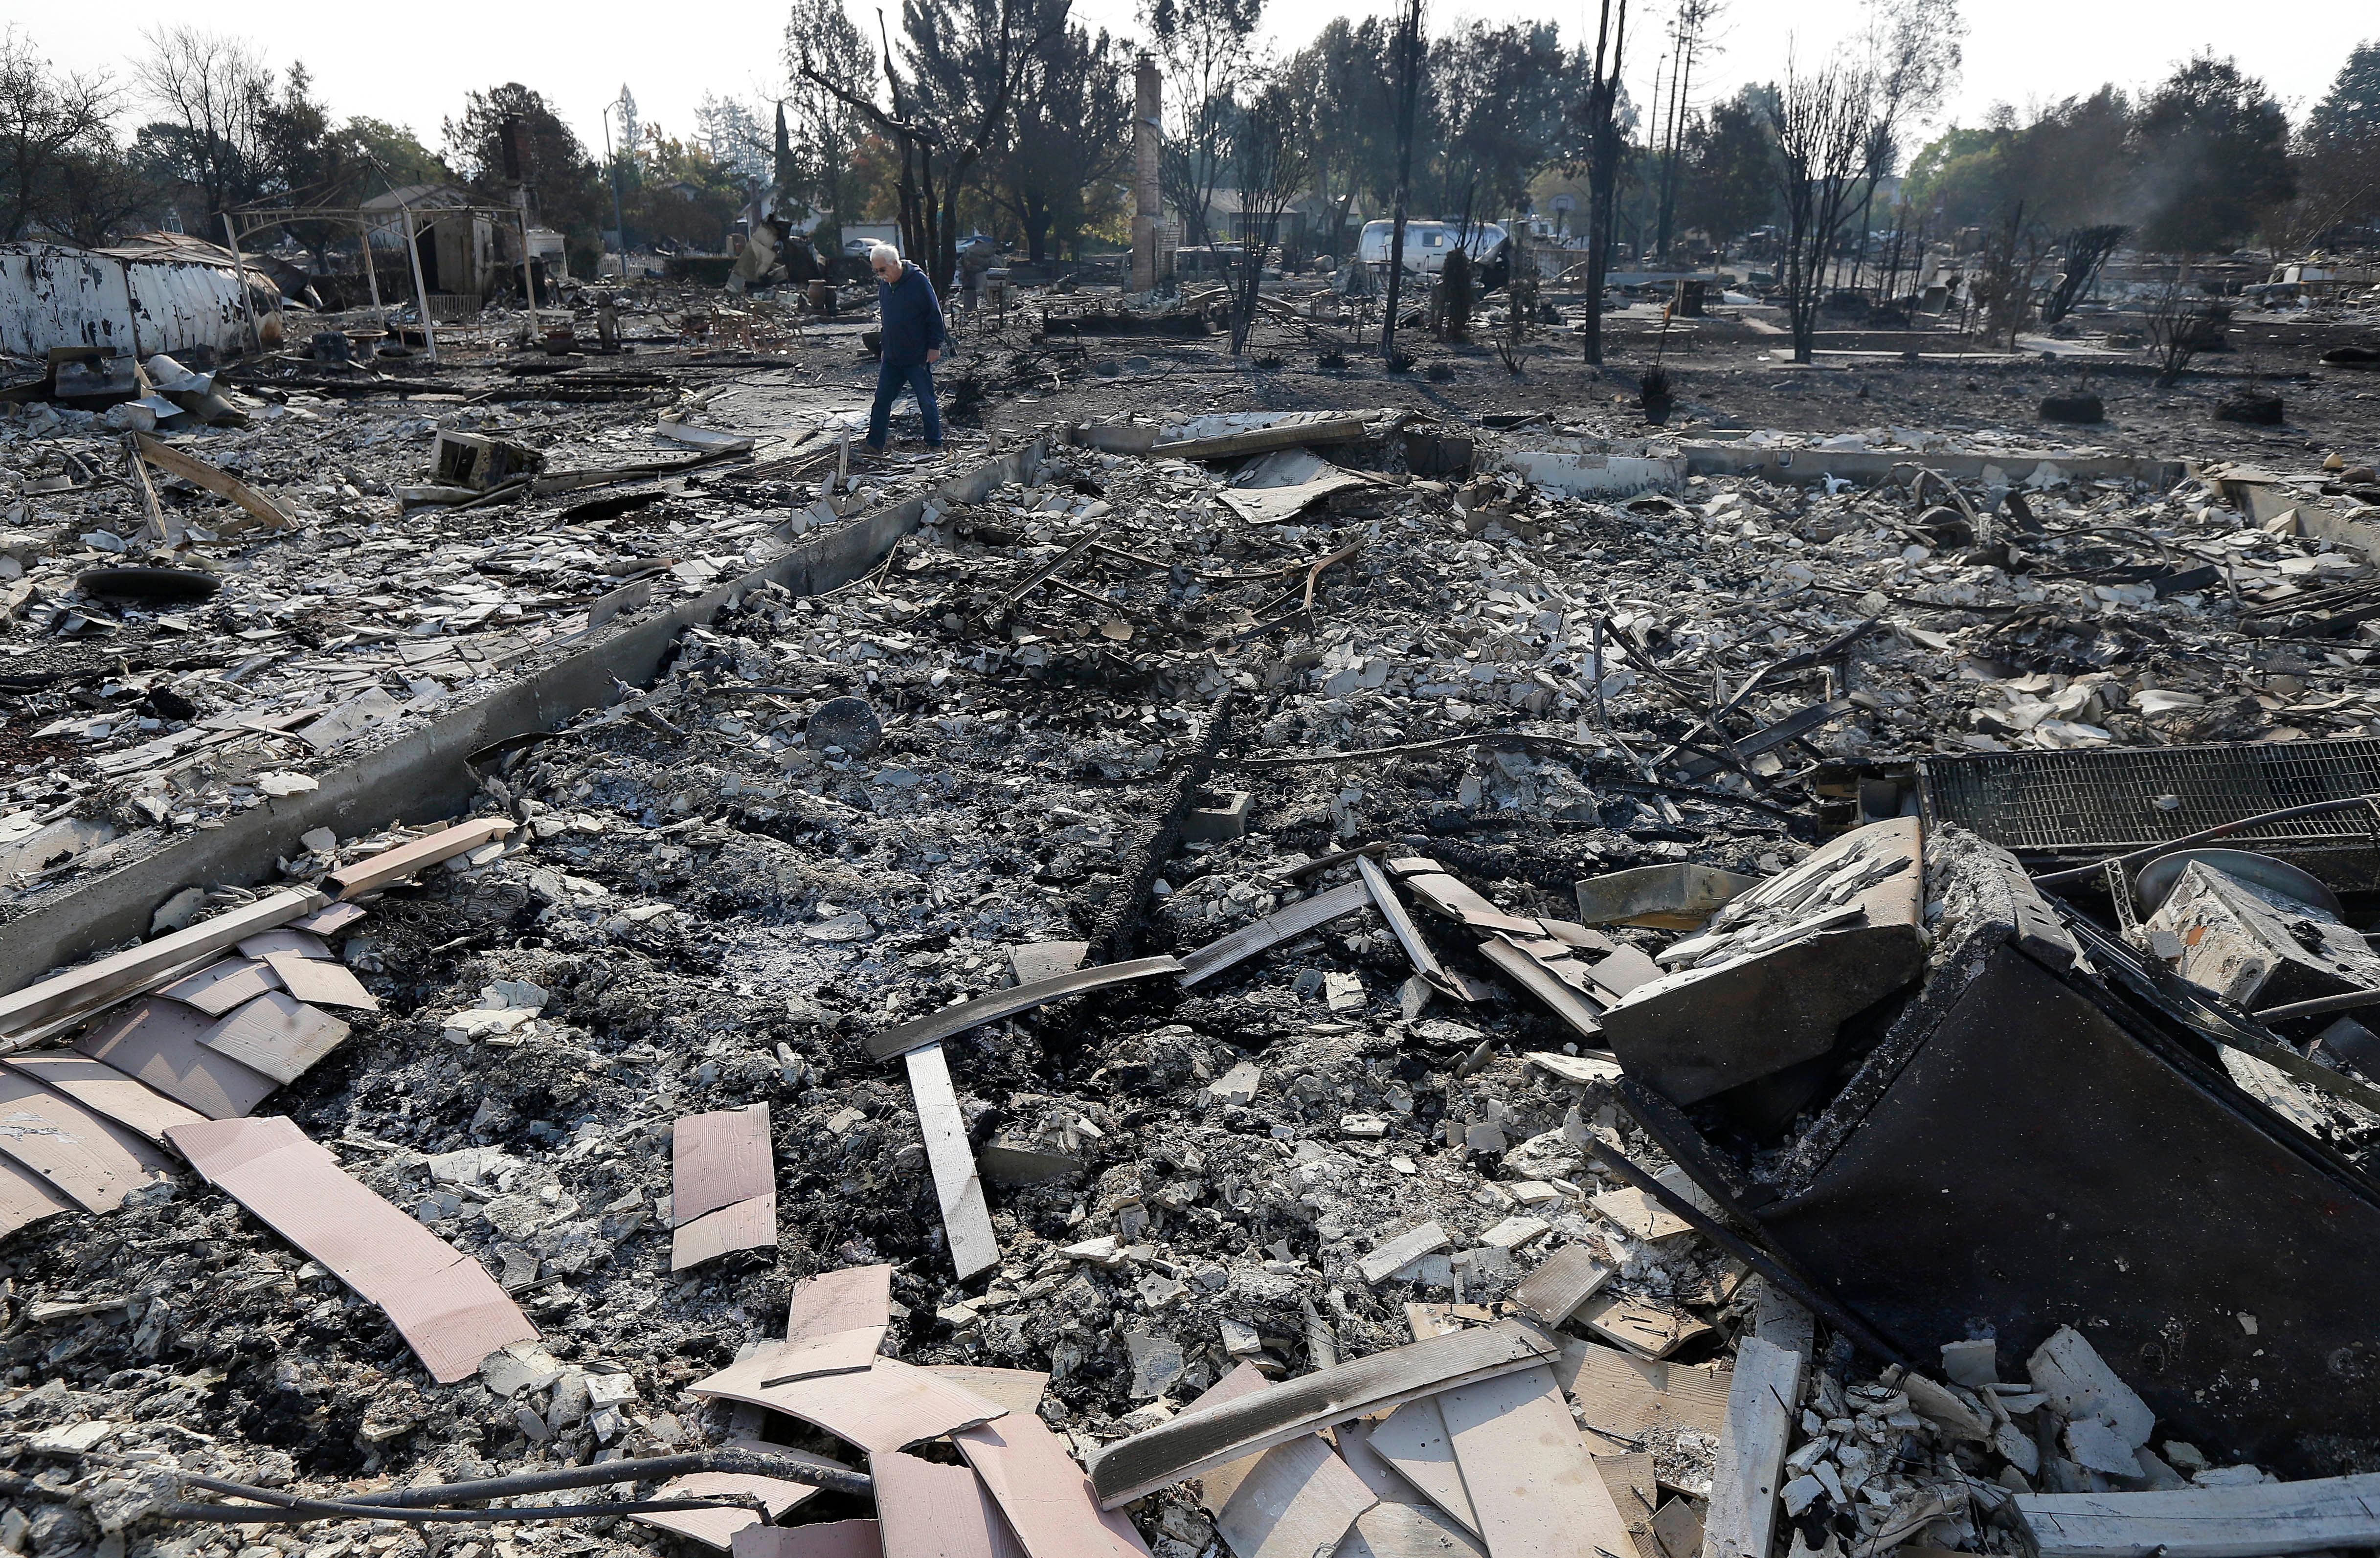 Phil Rush walks through the burnt remains at the site of his home destroyed by fires in Santa Rosa, Calif., Wednesday, Oct. 11, 2017. Wildfires tearing through California's wine country continued to expand Wednesday, destroying hundreds more homes and structures and prompting new evacuation orders. (AP Photo/Jeff Chiu)